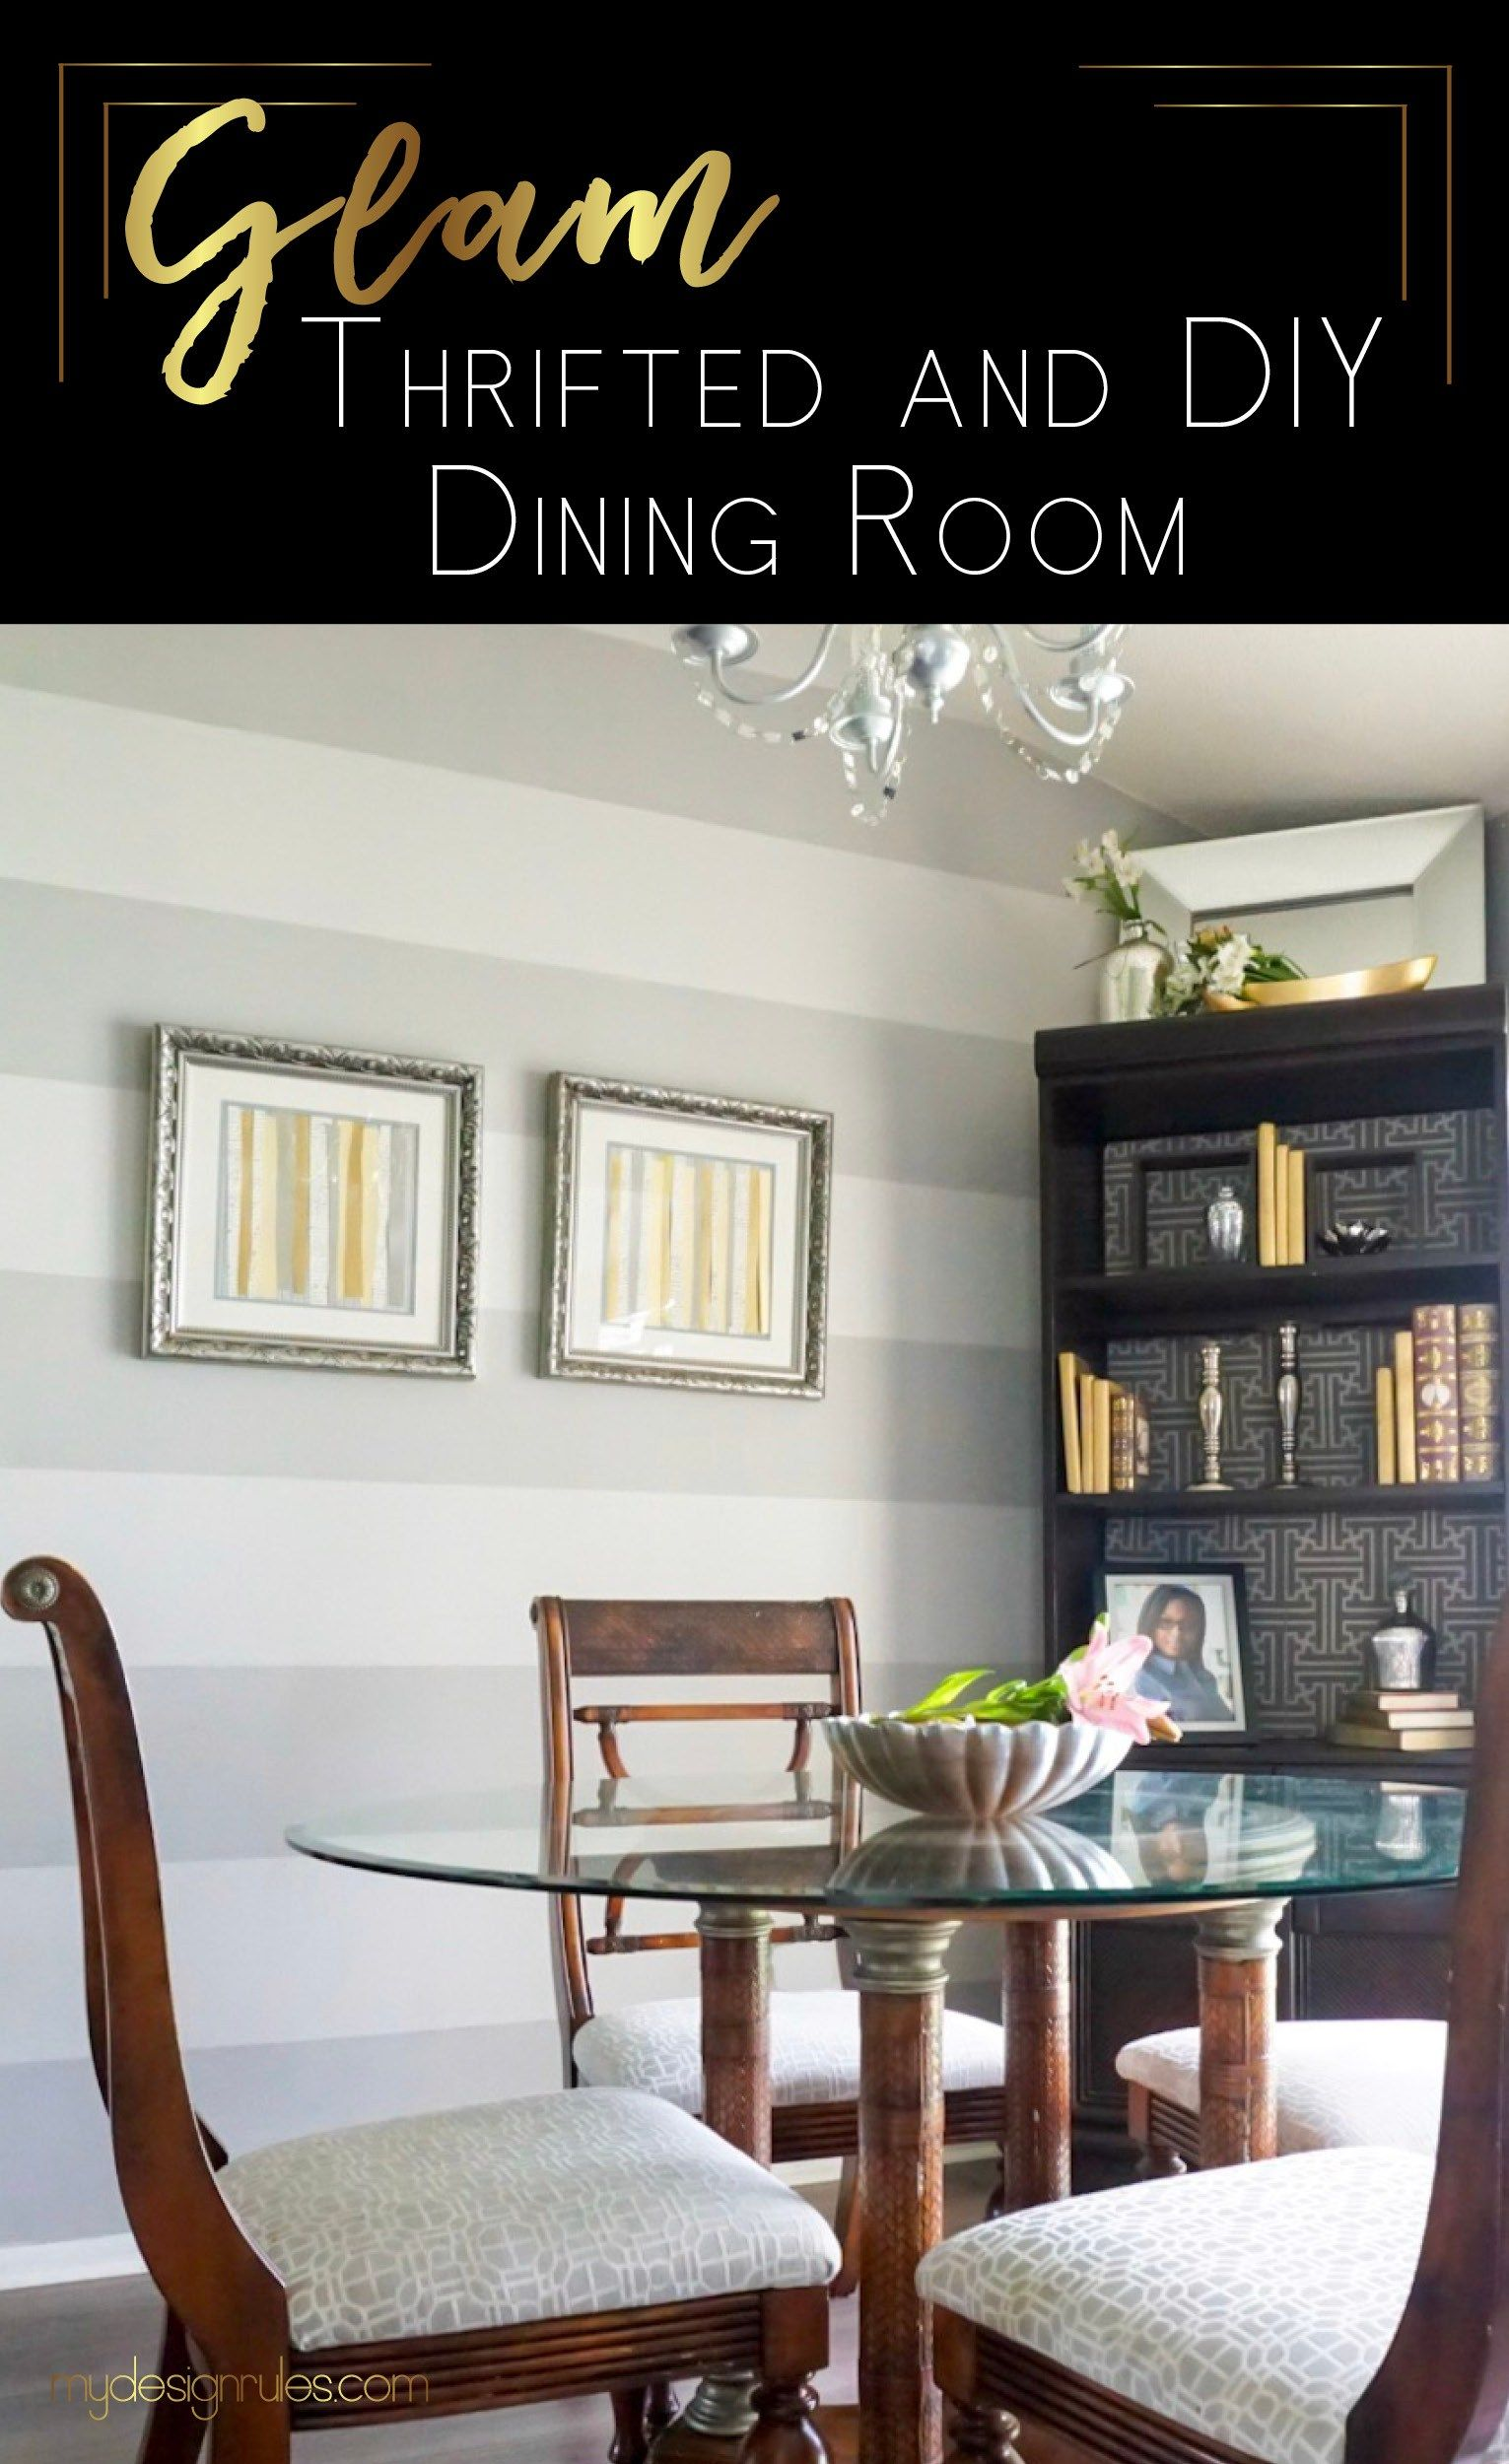 Dining Room Makeover Amusing $200 Budget Dining Room Makeover  Budgeting Room Makeovers And Room Design Inspiration